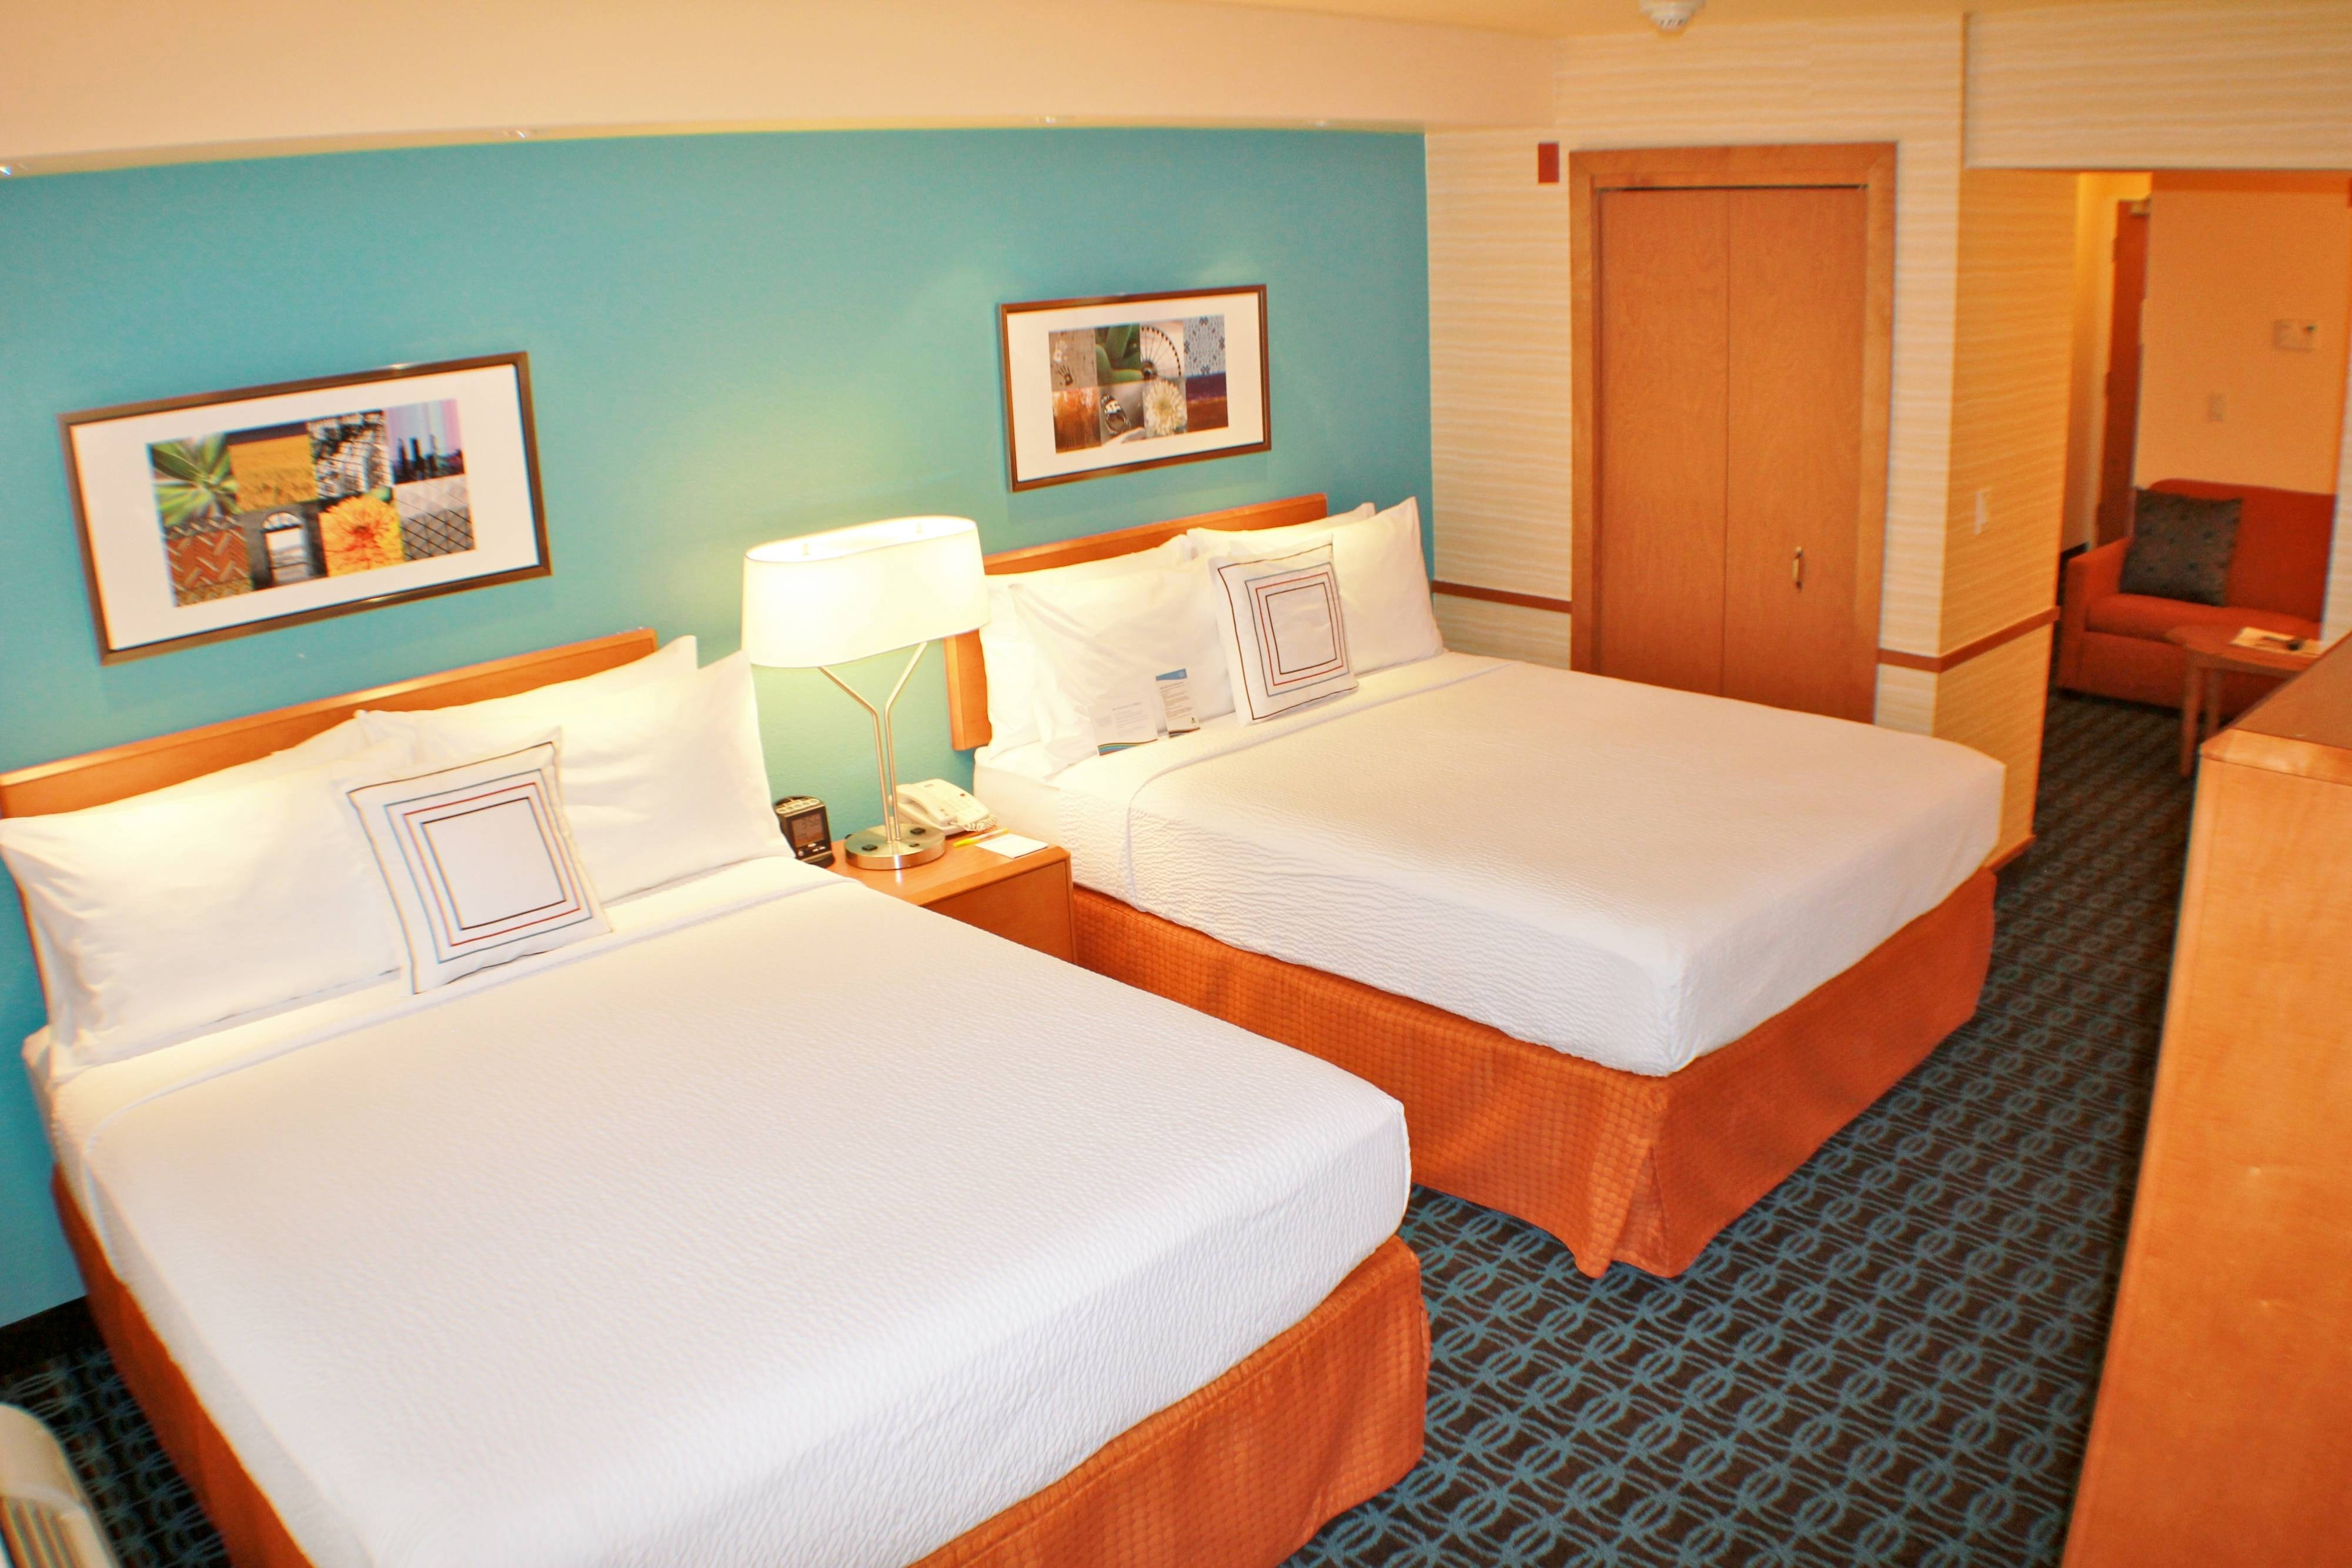 Fairfield Inn and Suites Rooms